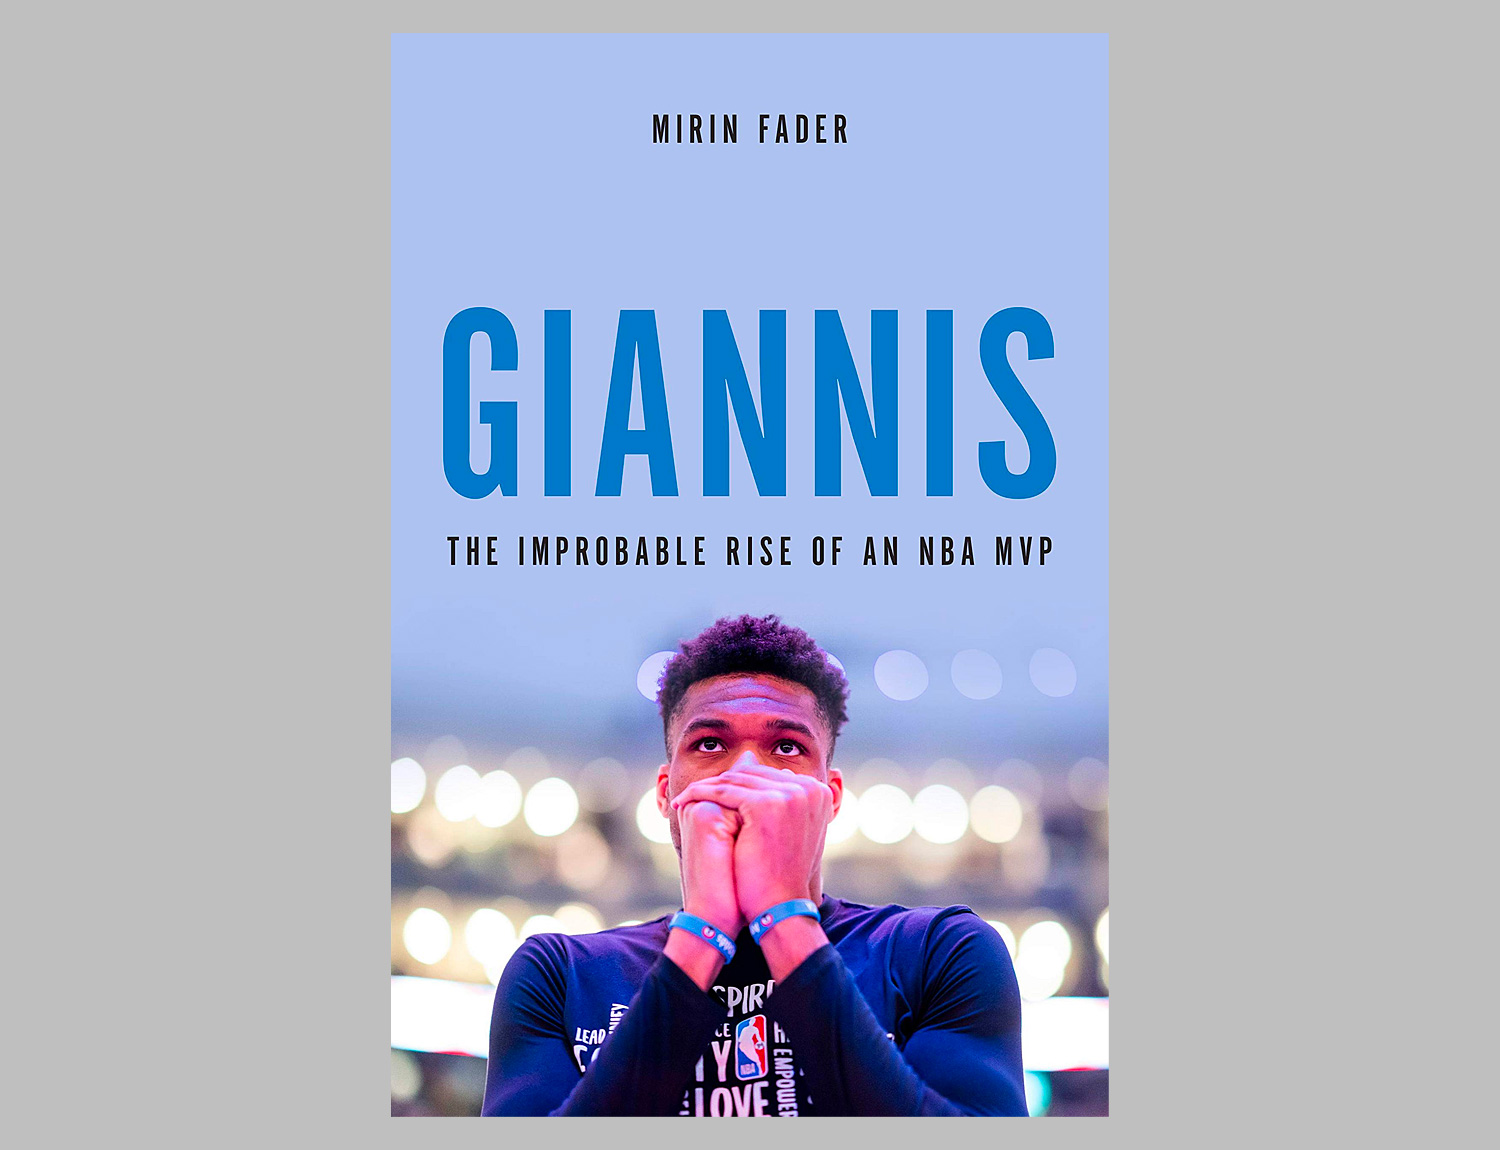 Giannis: The Improbable Rise of an NBA MVP at werd.com